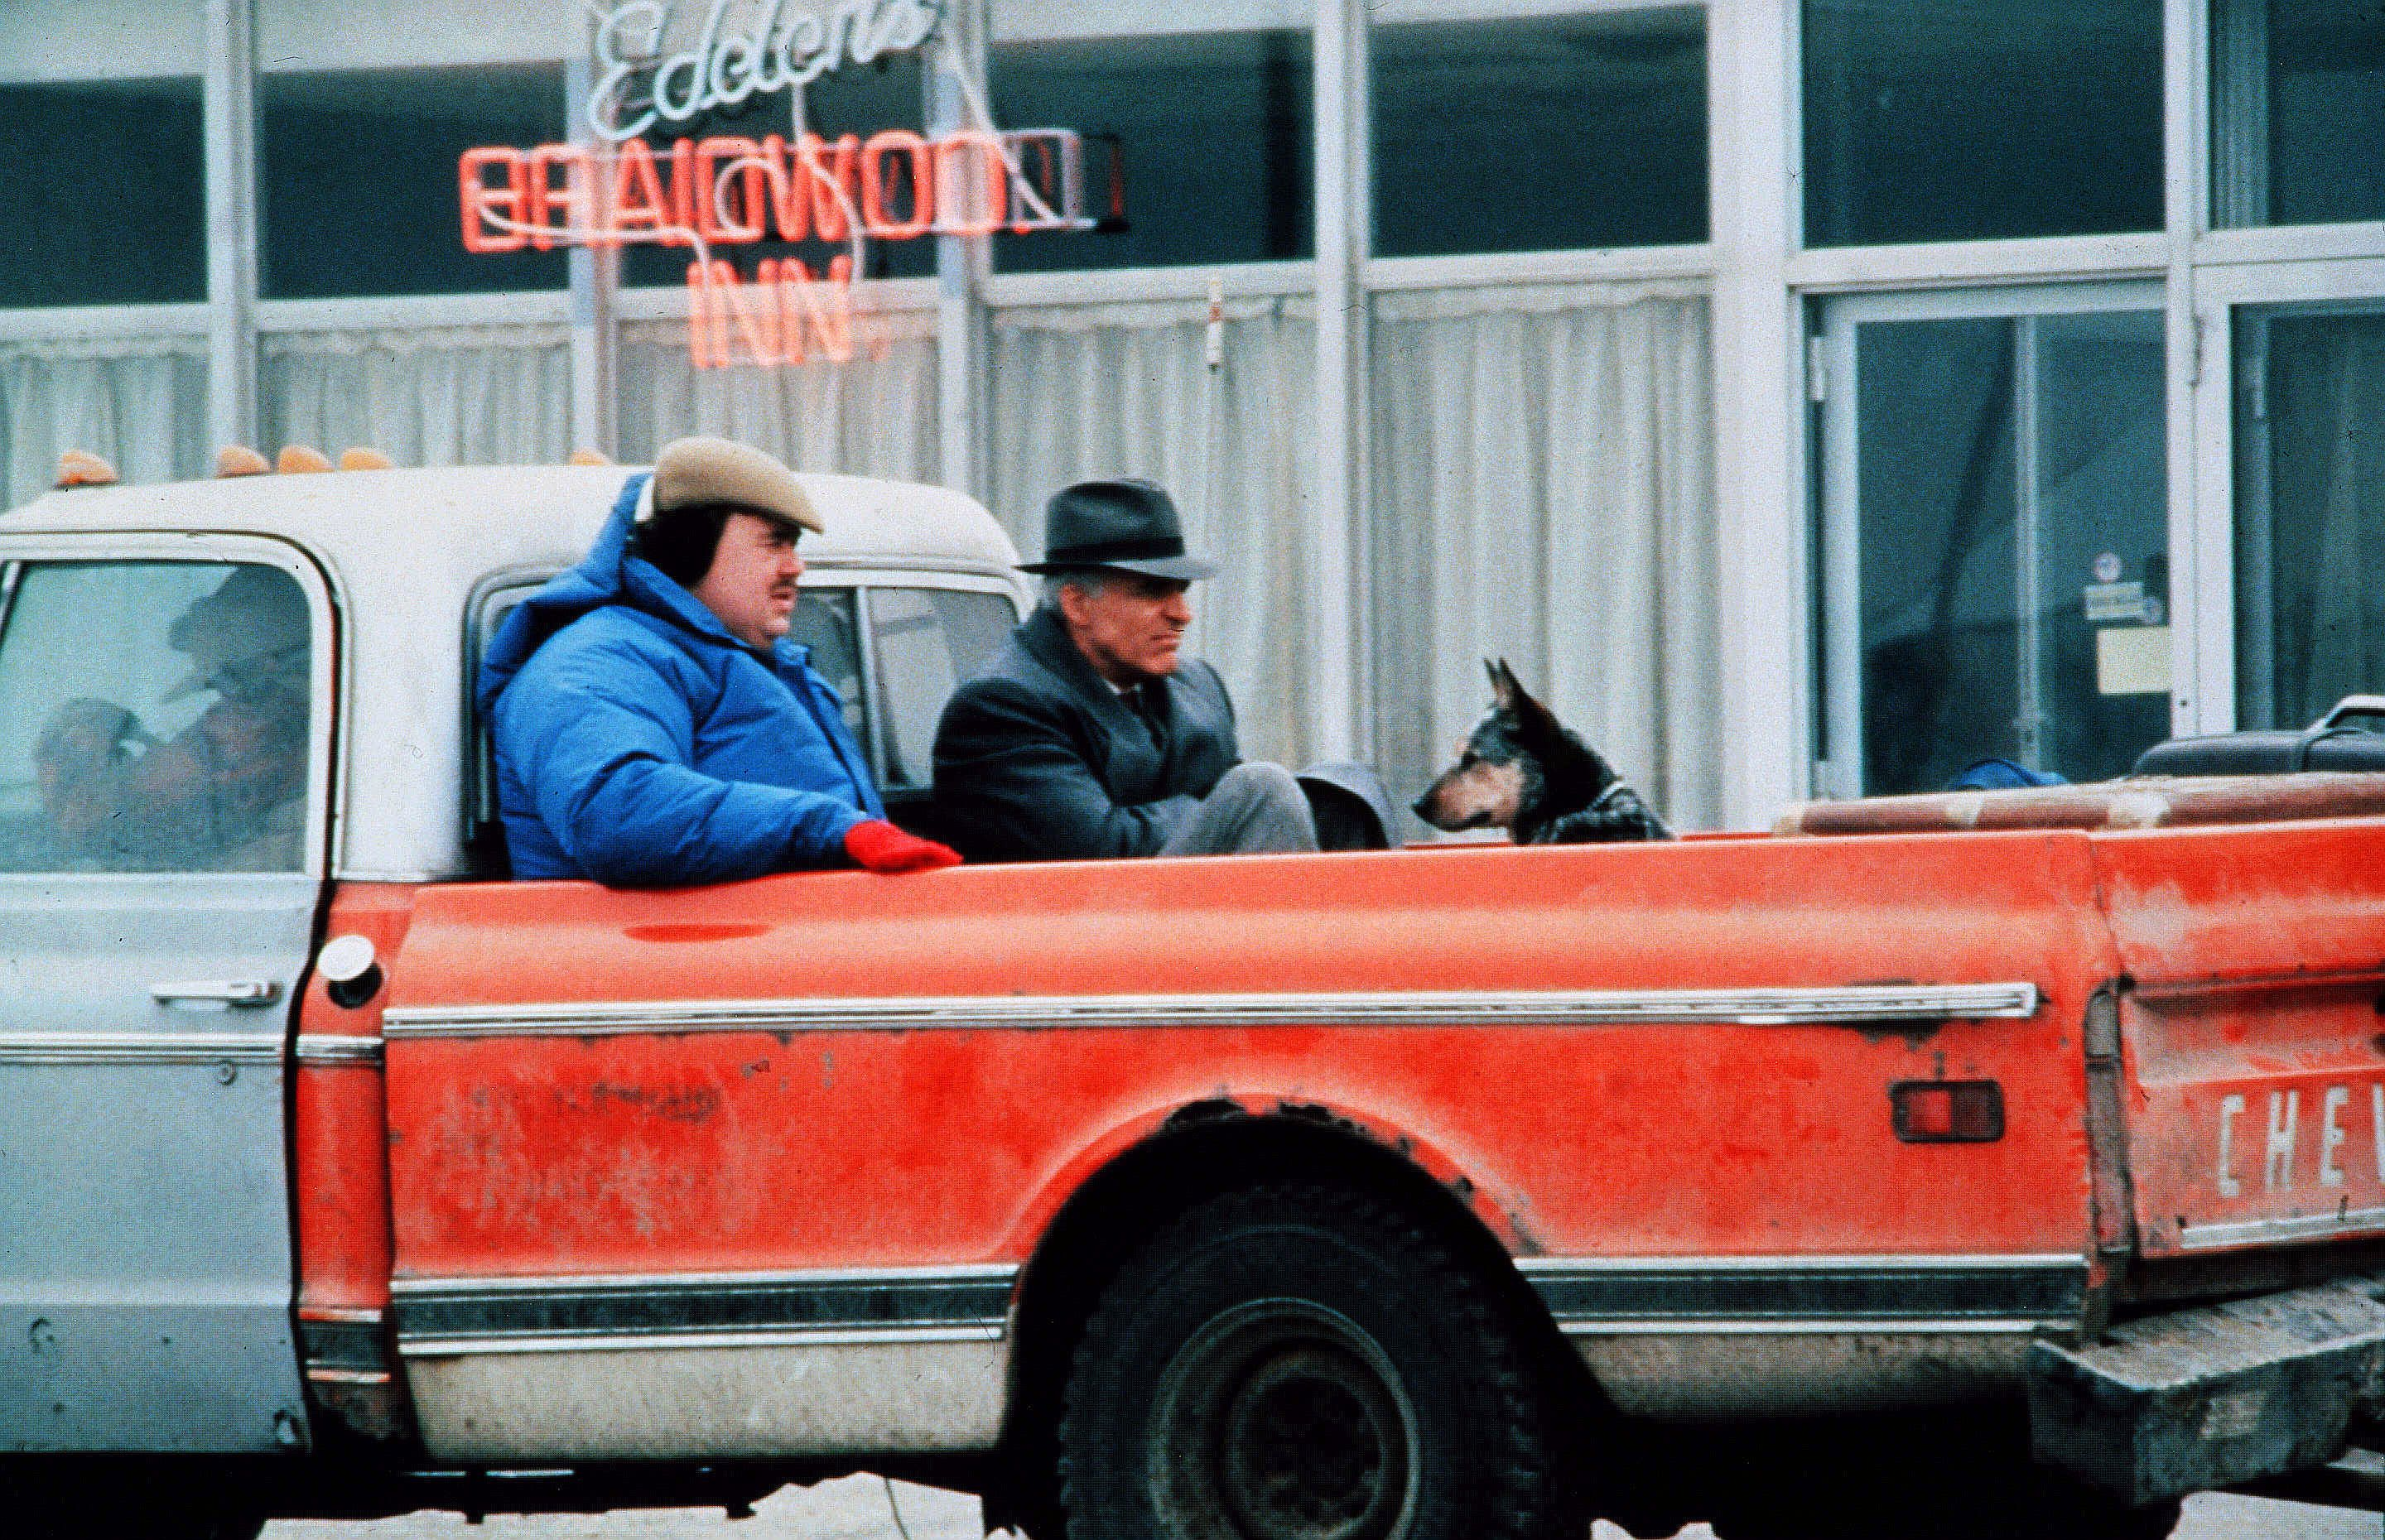 No Merchandising. Editorial Use Only. No Book Cover Usage.Mandatory Credit: Photo by Paramount/Kobal/REX/Shutterstock (5883363i) John Candy, Steve Martin Trains and Automobiles Planes - 1987 Director: John Hughes Paramount USA Scene Still Comedy Un ticket pour deux